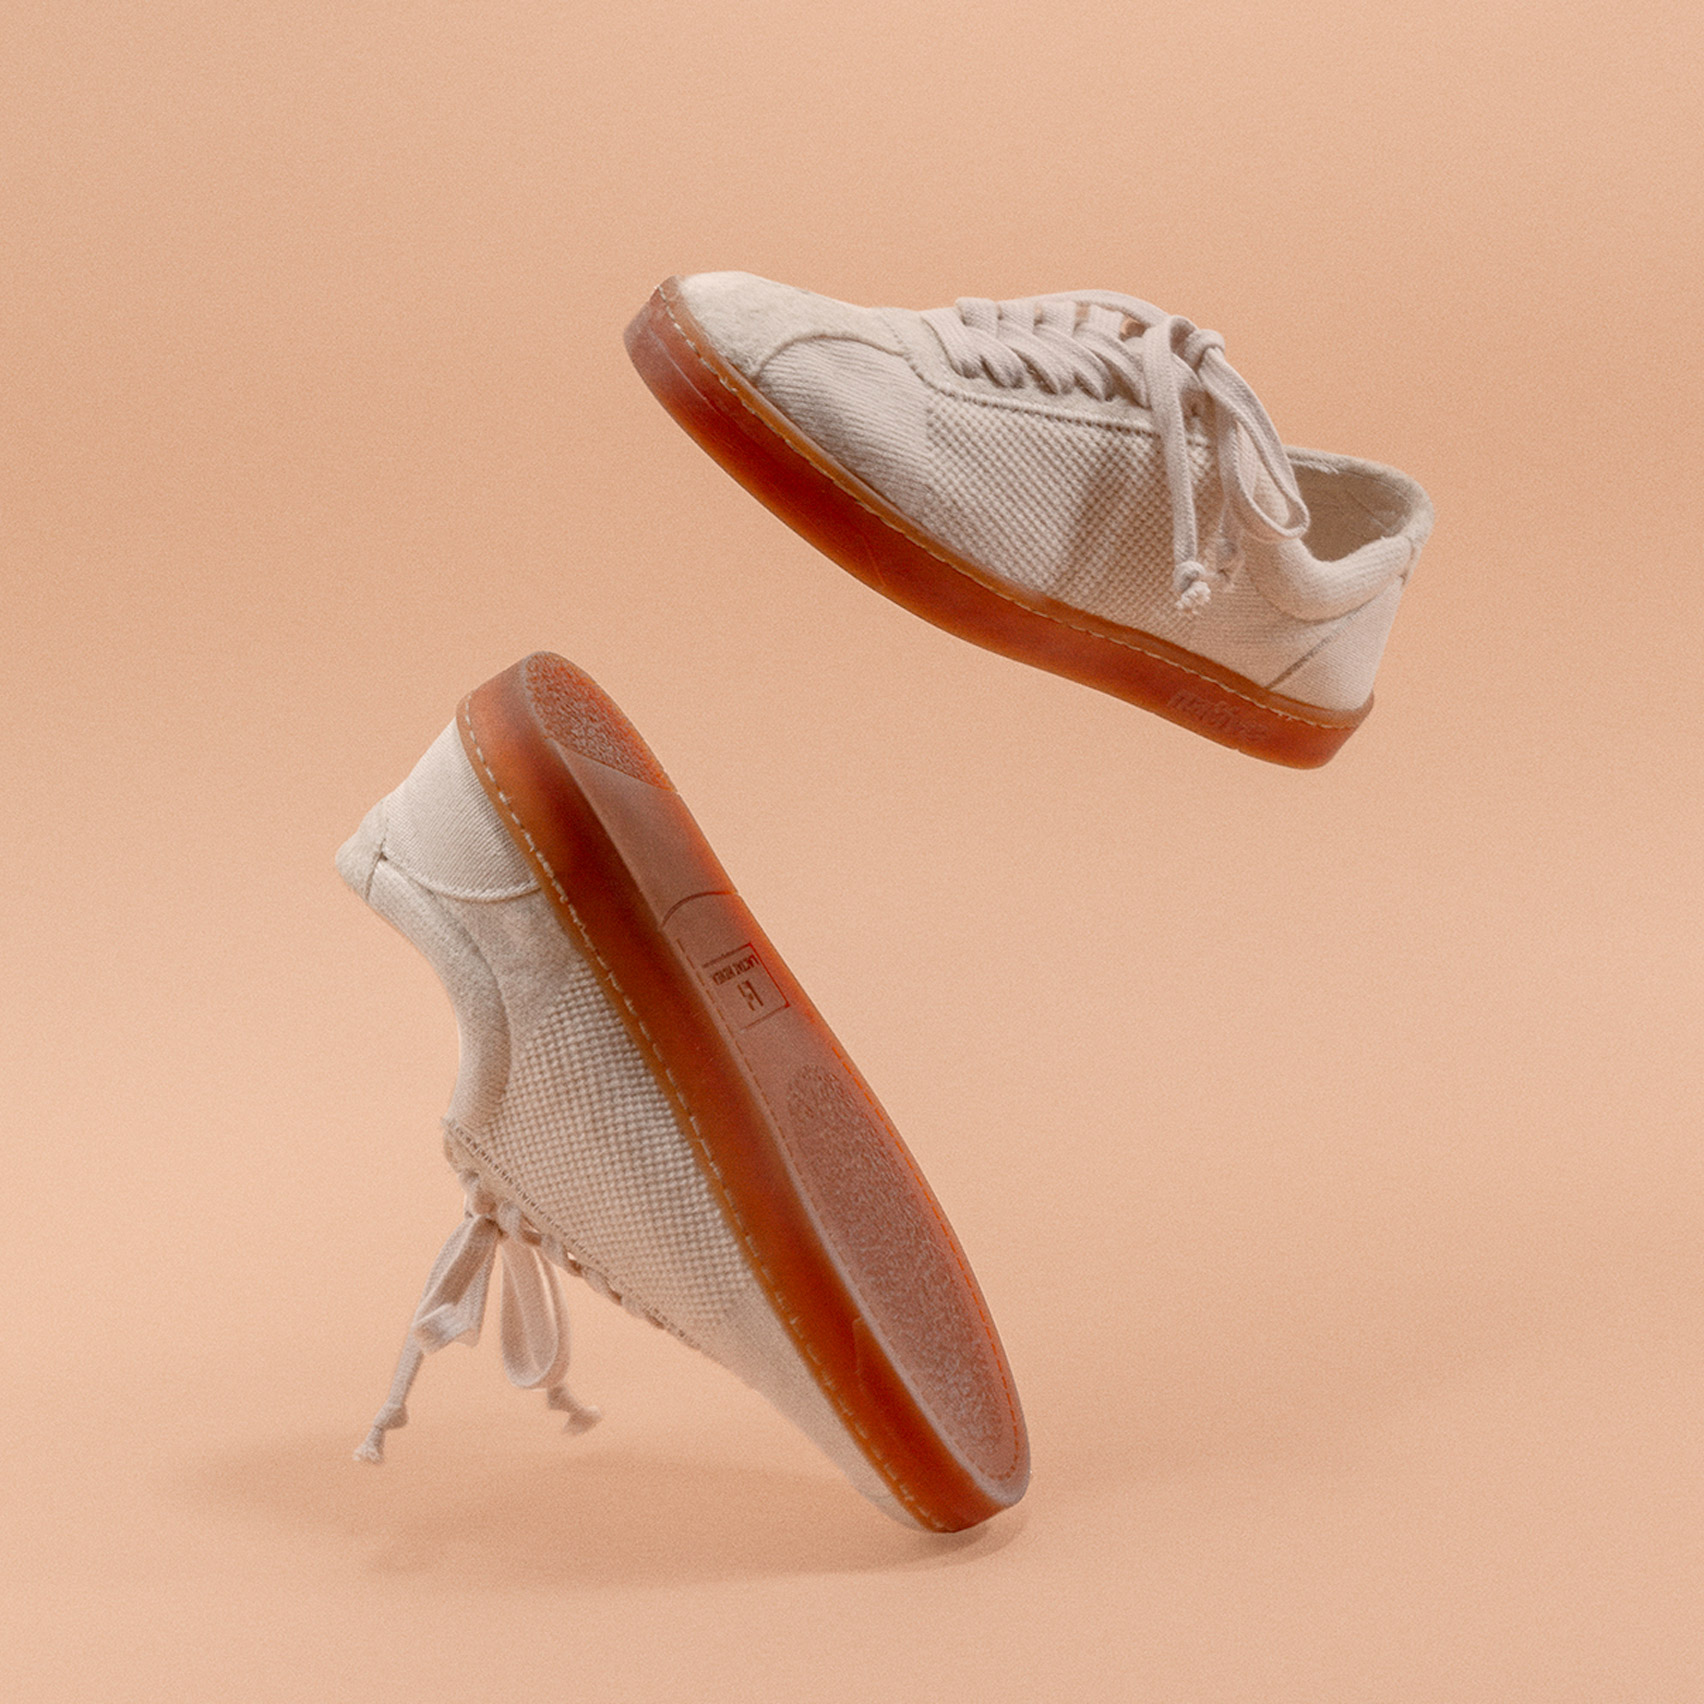 Native Shoes makes plant-based sneakers